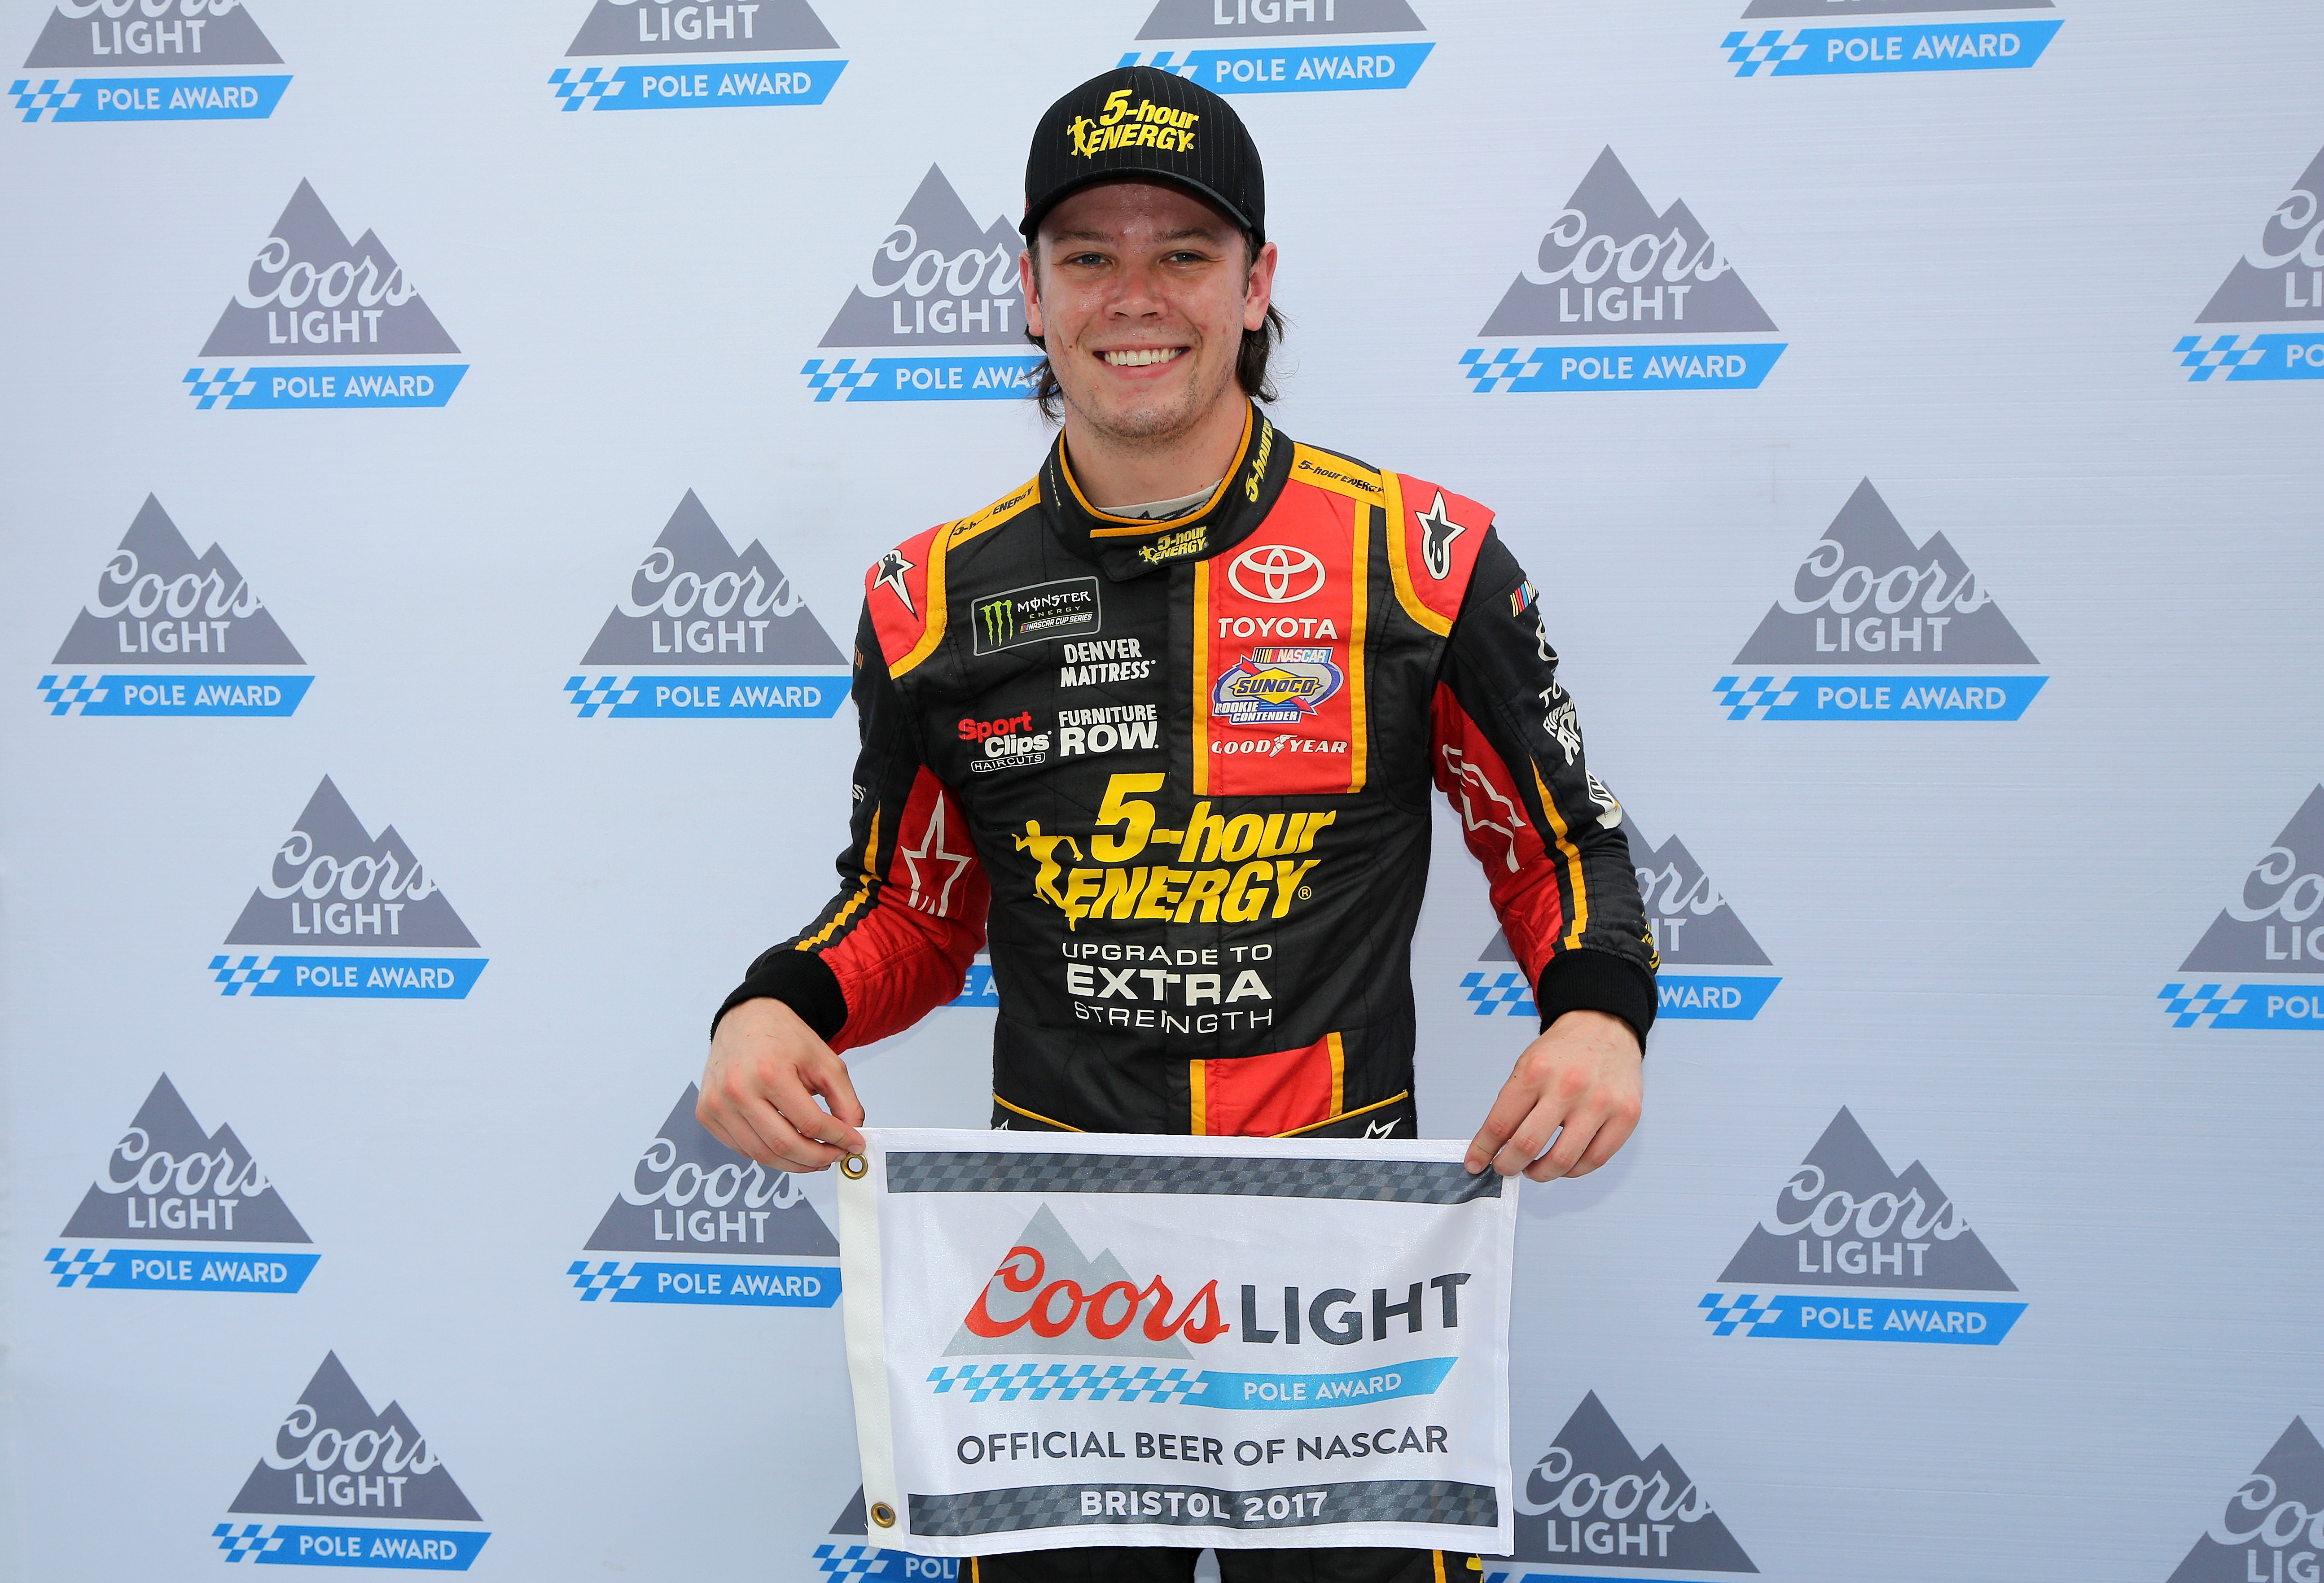 First pole position for Erik Jones - Bristol Motor Speedway 2017